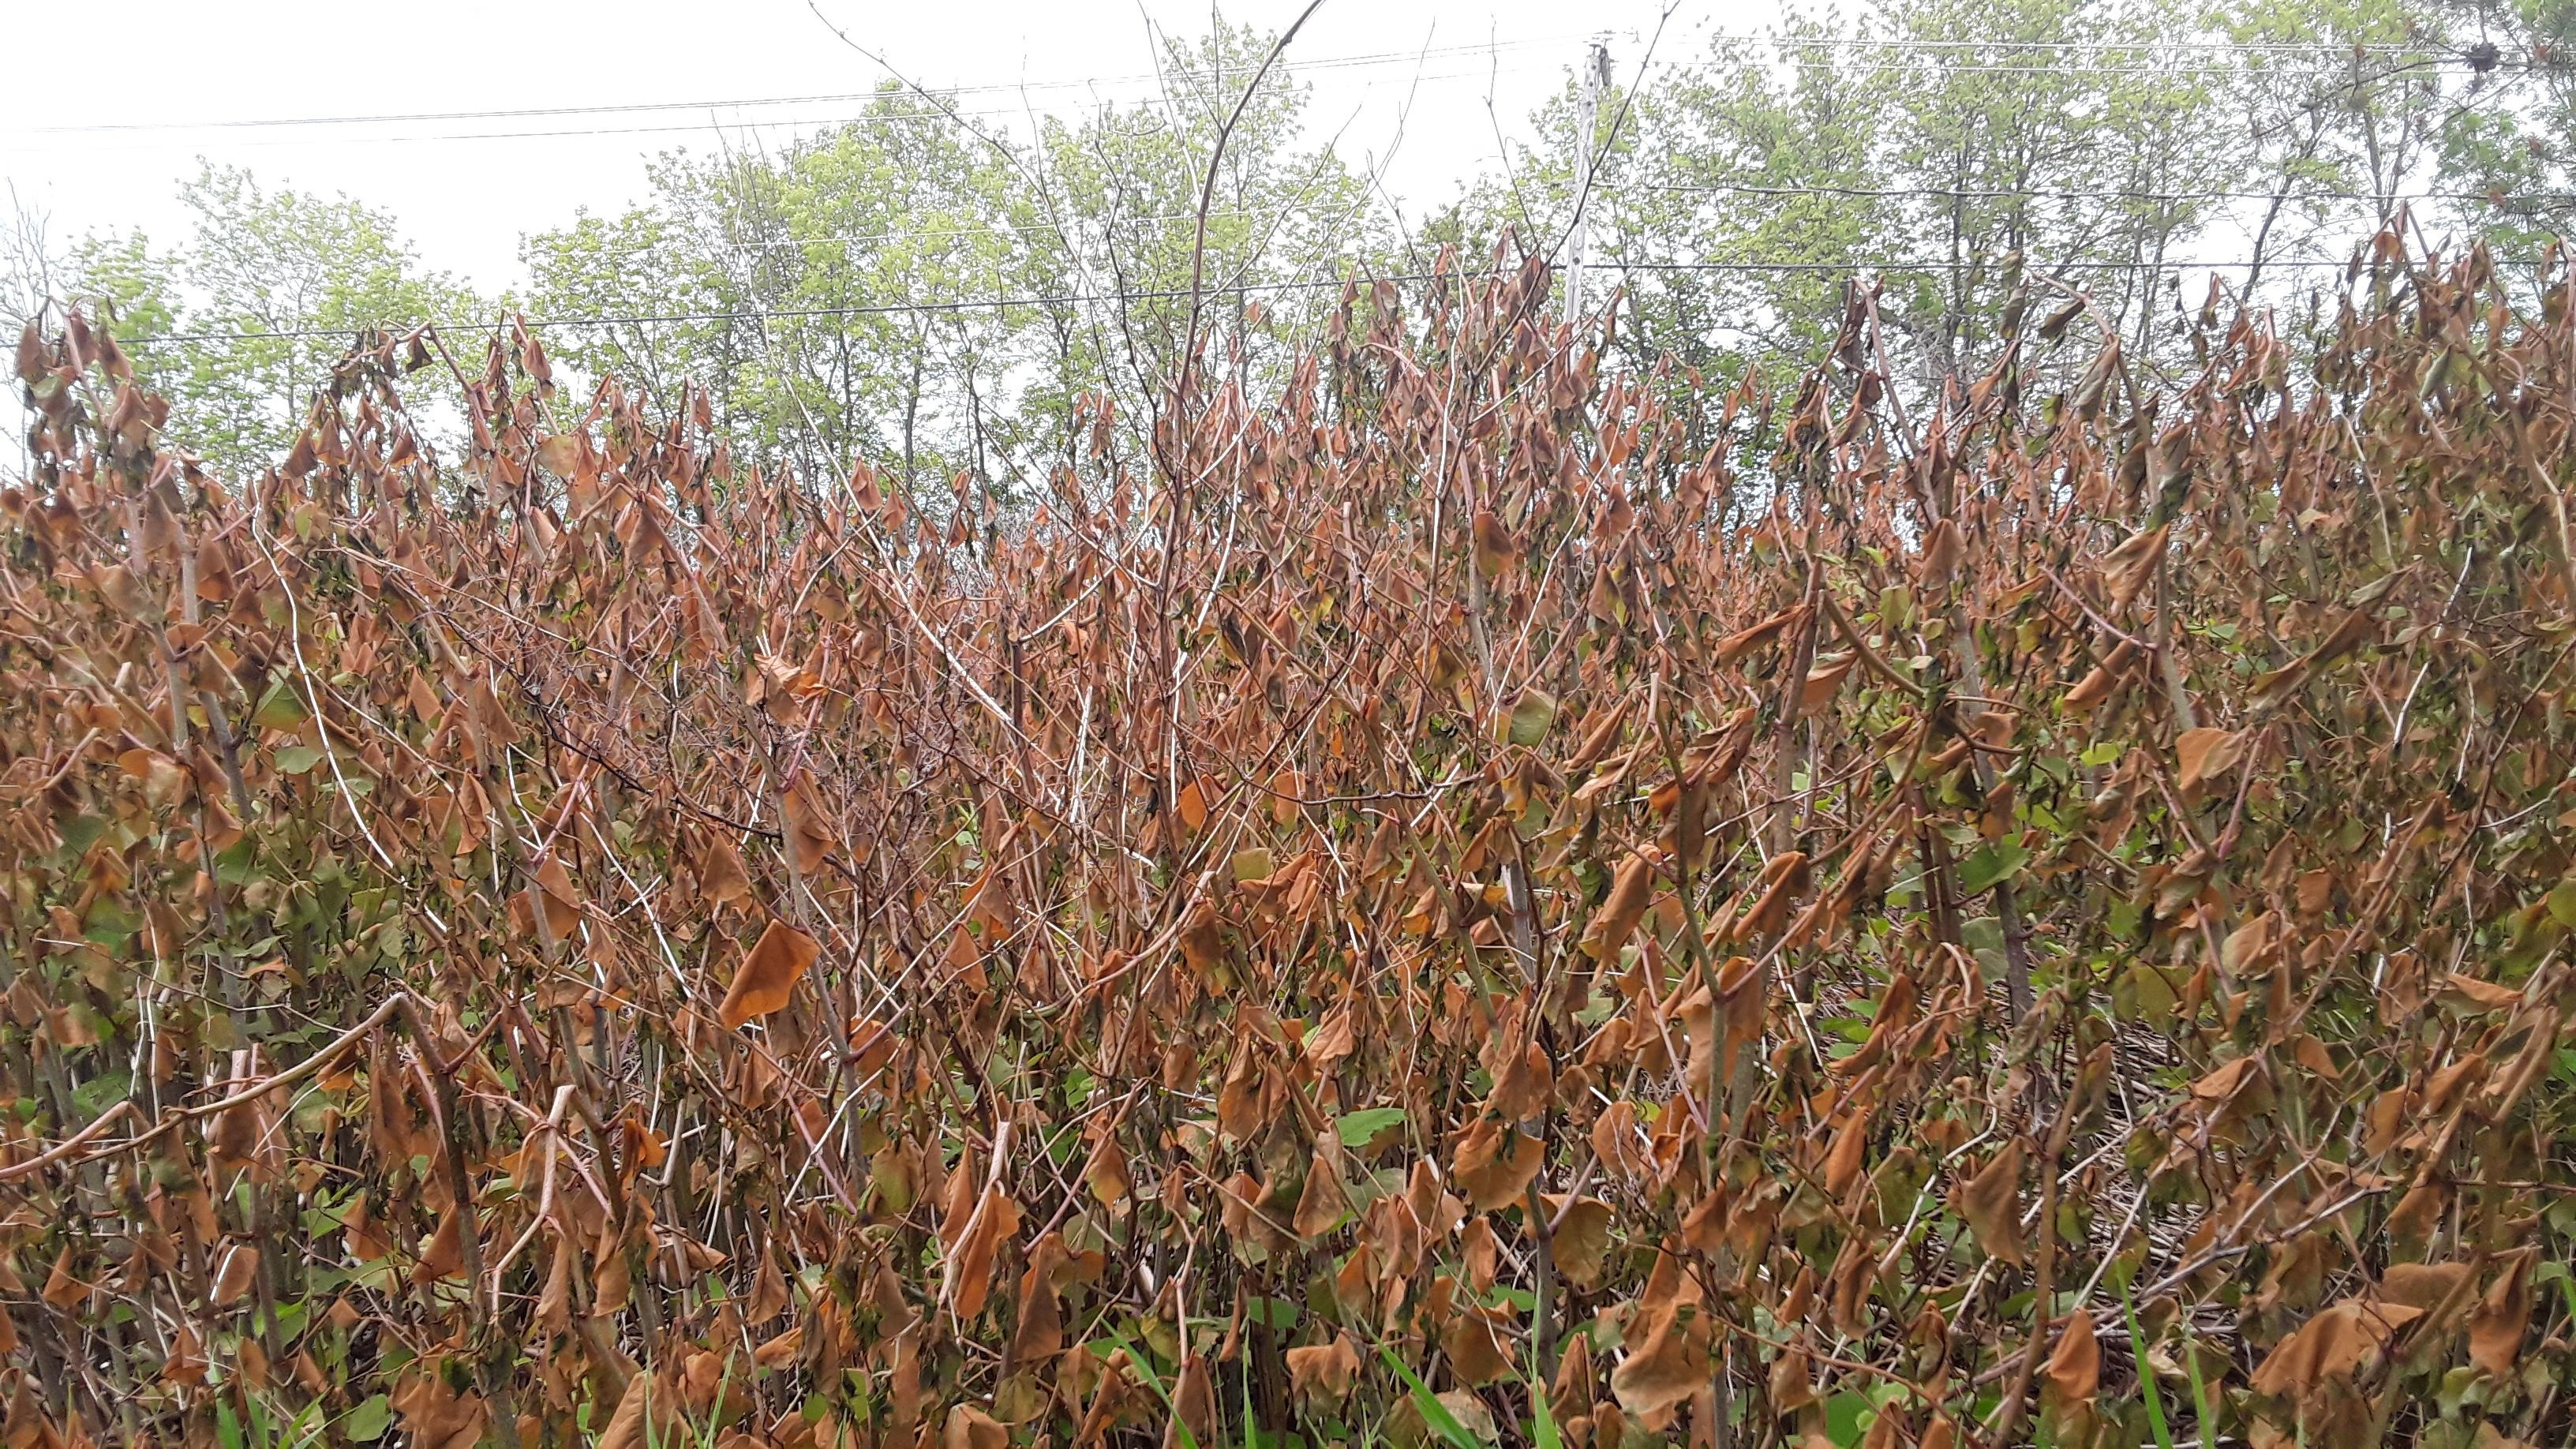 Knotweed that turned completely brown a few days after a frost.